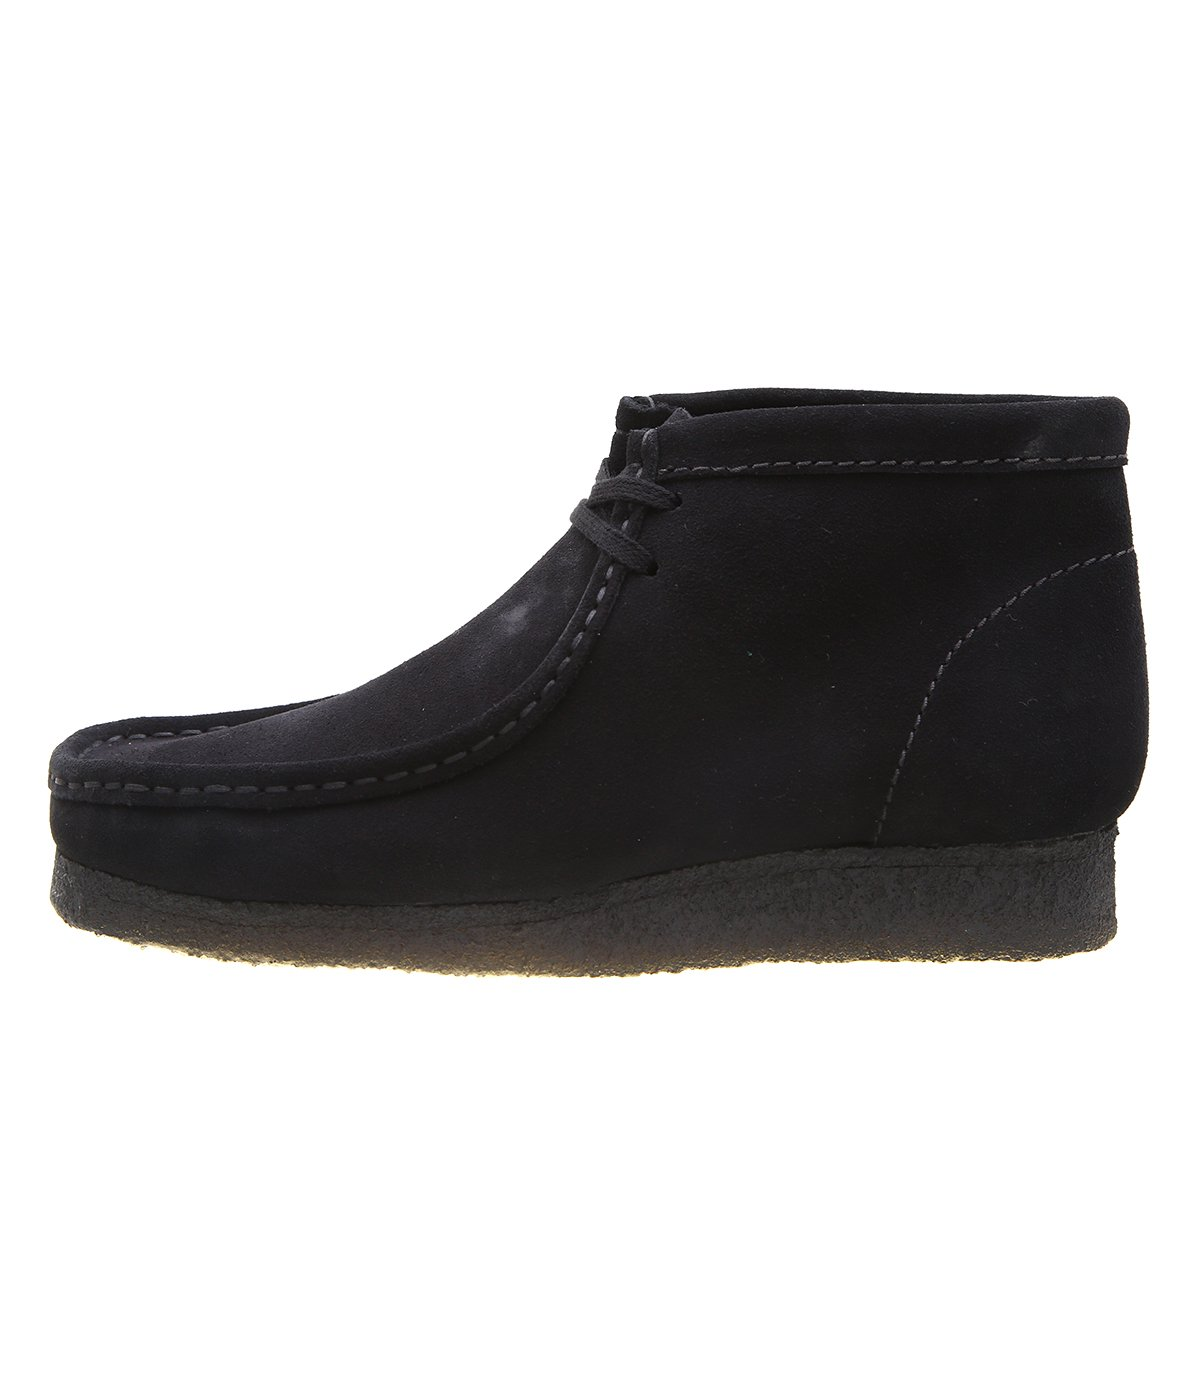 WALLABEE BOOT -BLK SUEDE-